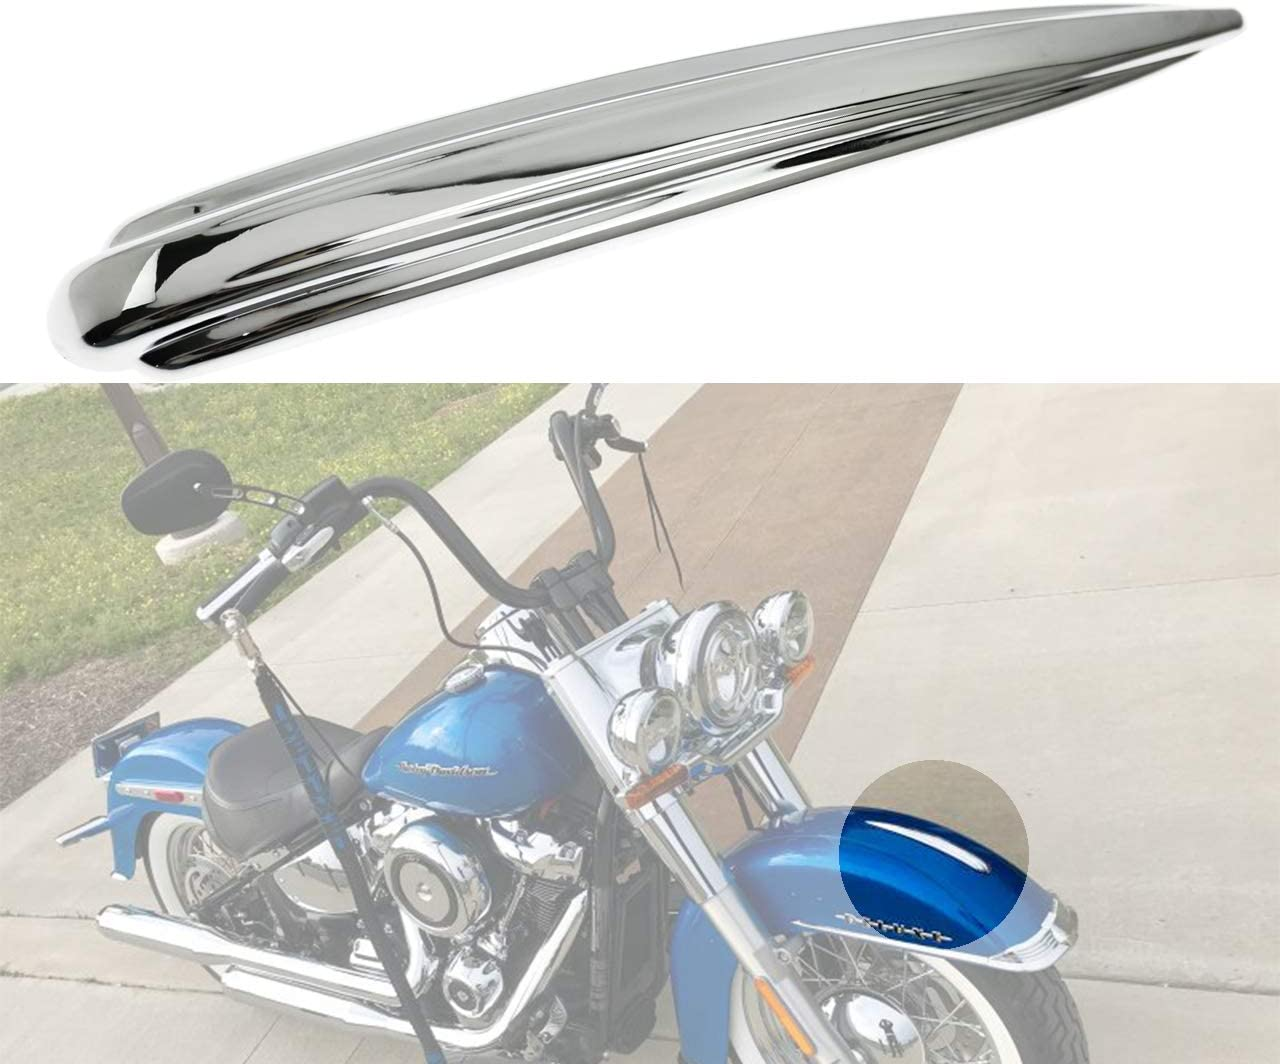 YHMTIVTU Motorcycle Front Fender Mudguard Store Harley Cheap Trim for To Fit